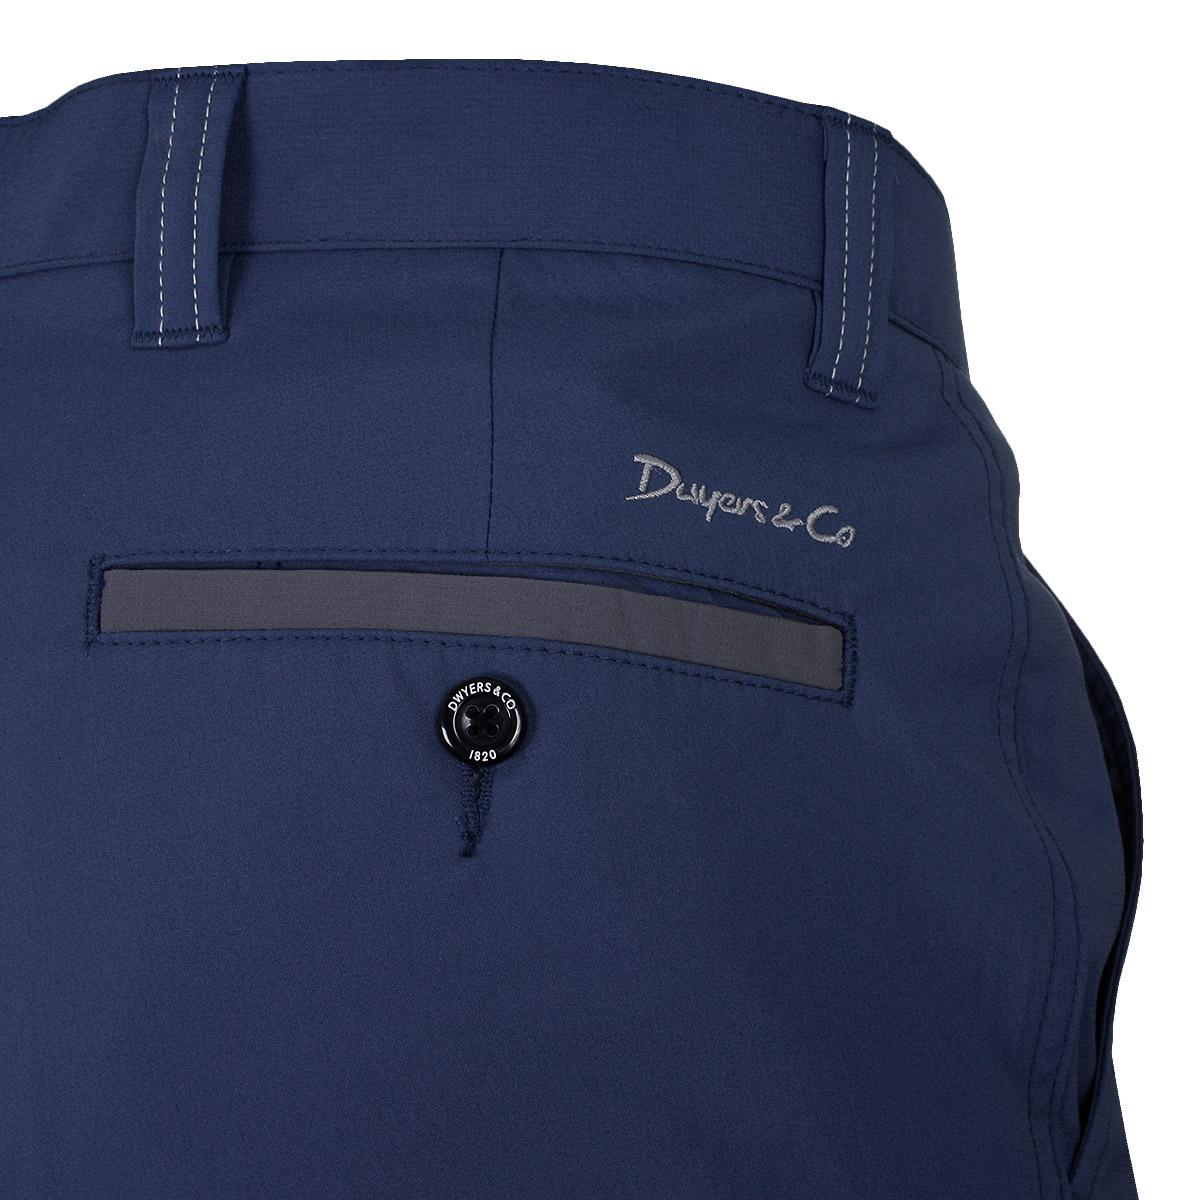 Dwyers-amp-Co-Mens-Matchplay-Stretch-Lightweight-Golf-Trousers-38-OFF-RRP thumbnail 32